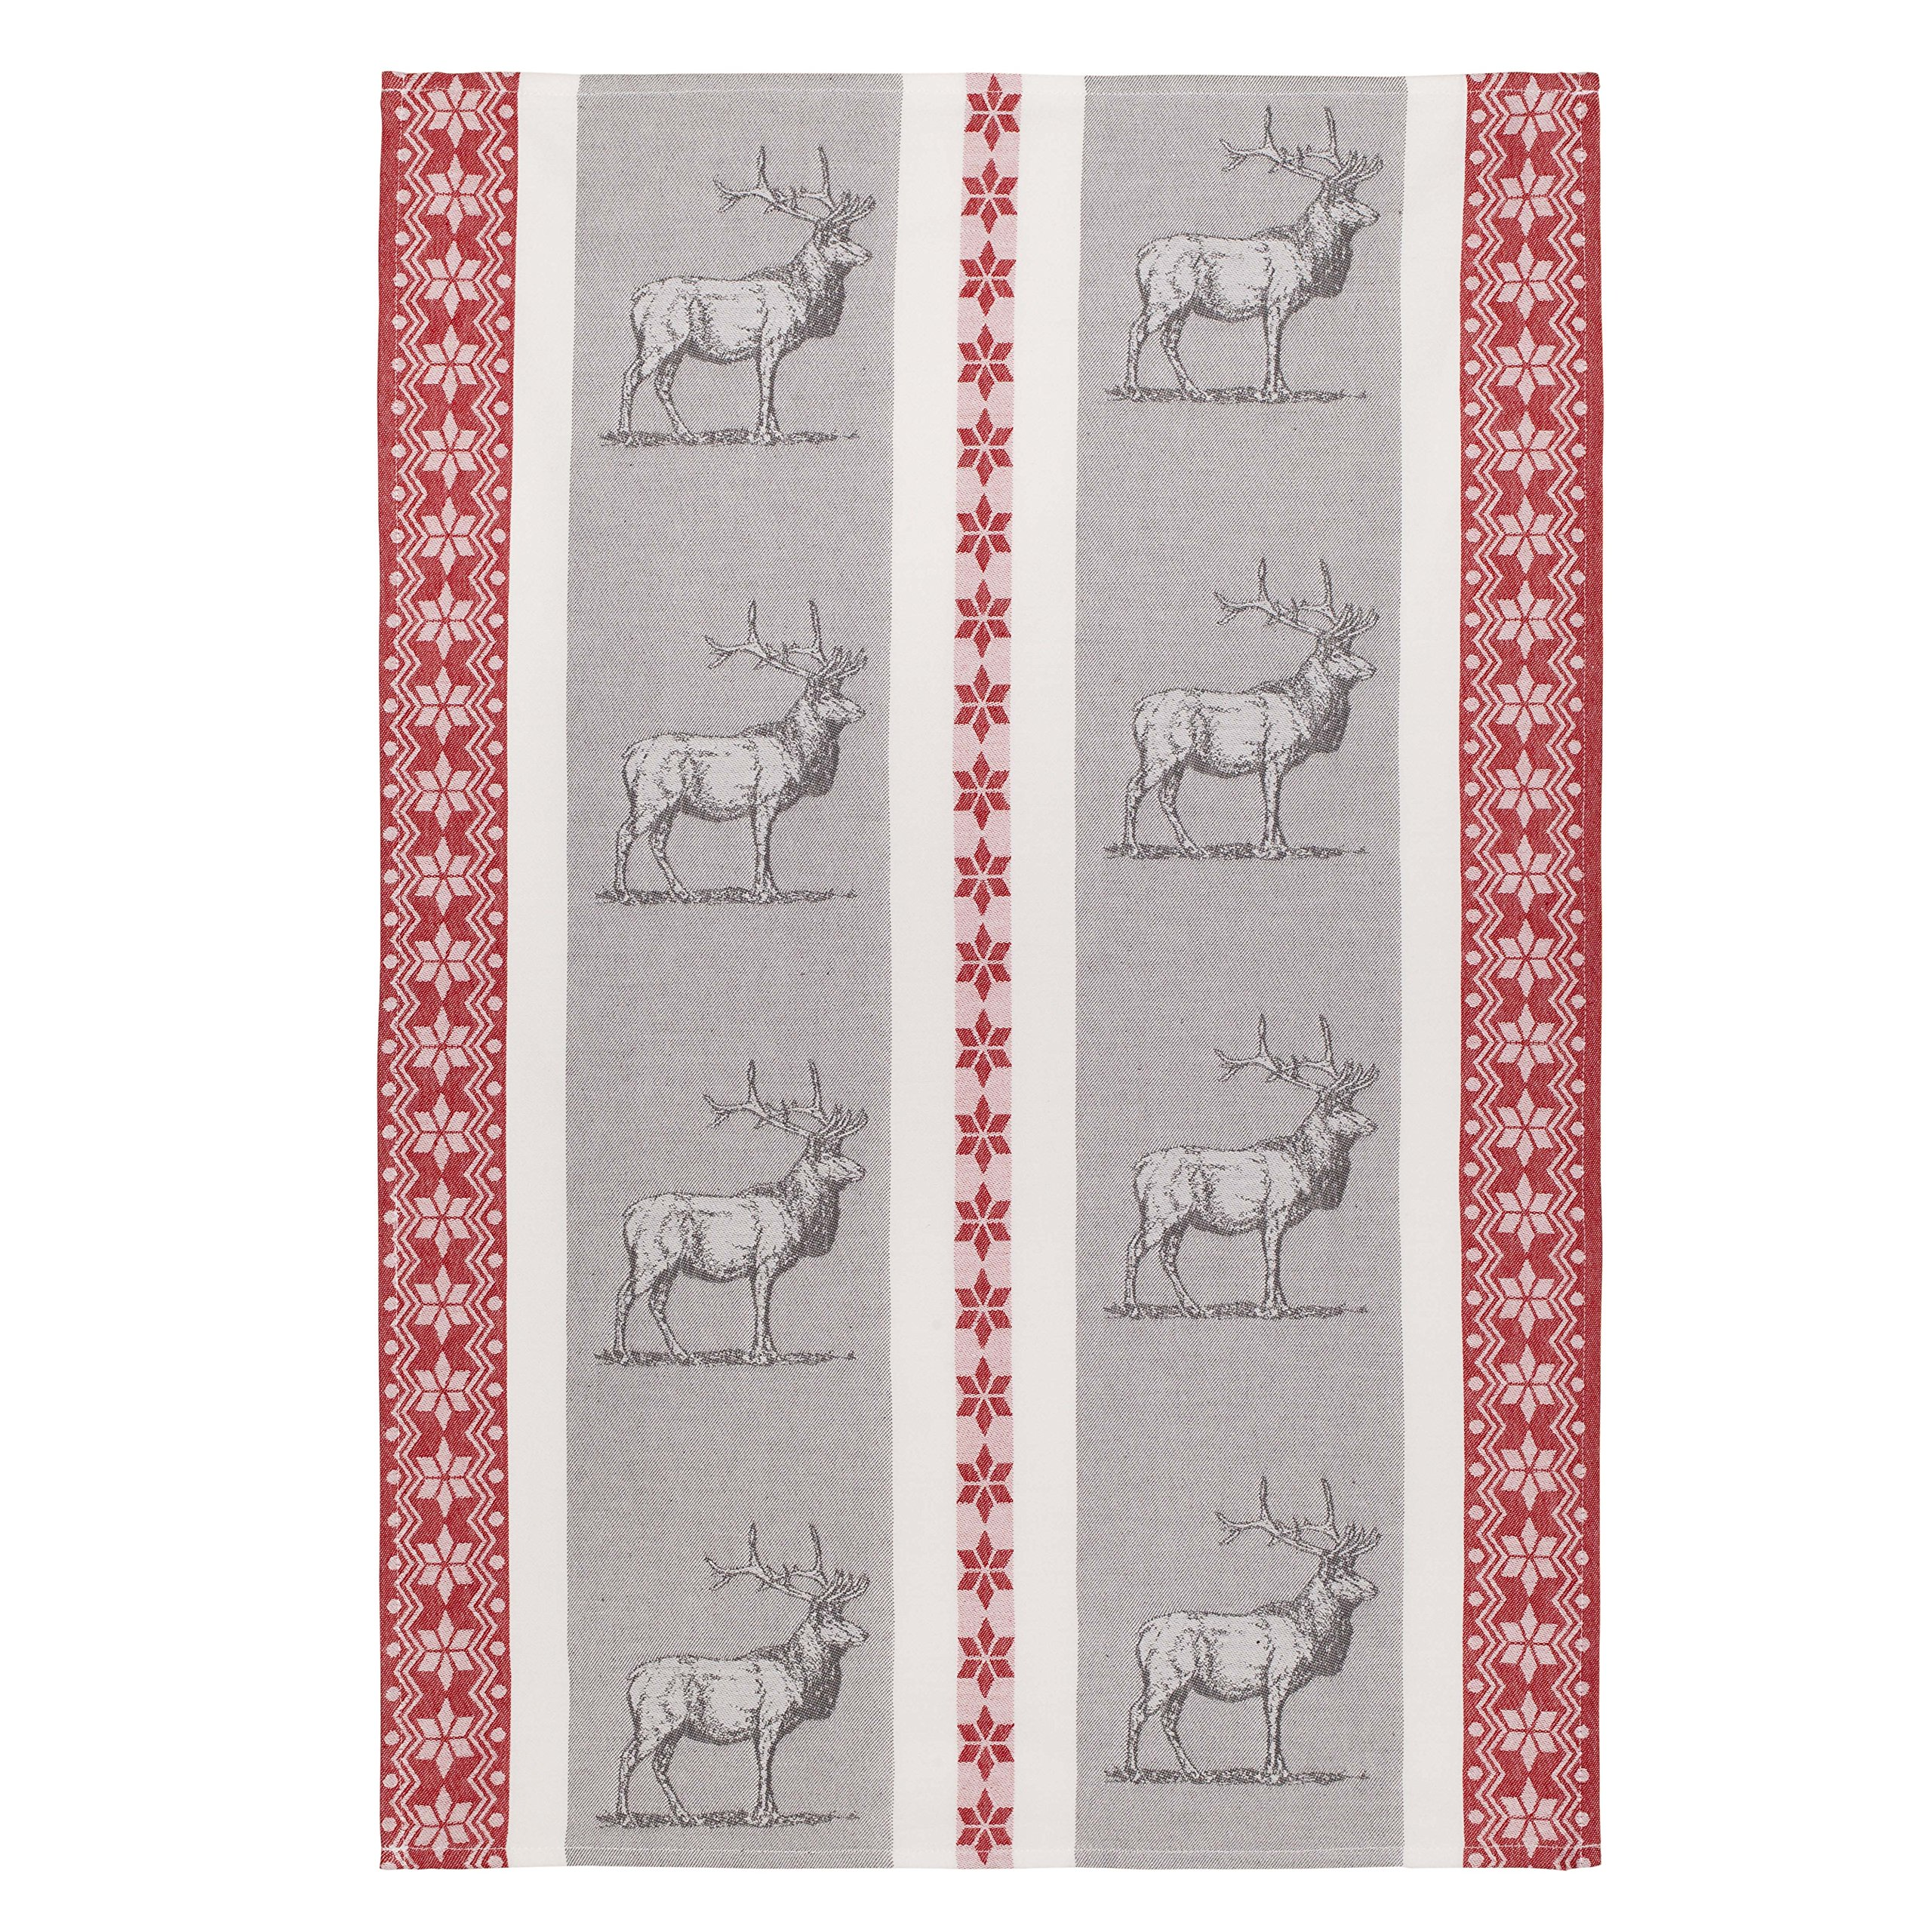 Coucke French Cotton Jacquard Towel Farm Animal Collection, Le Cerf (Deer), FB Rouge, 20-Inches by 30-Inches, Gray and Red